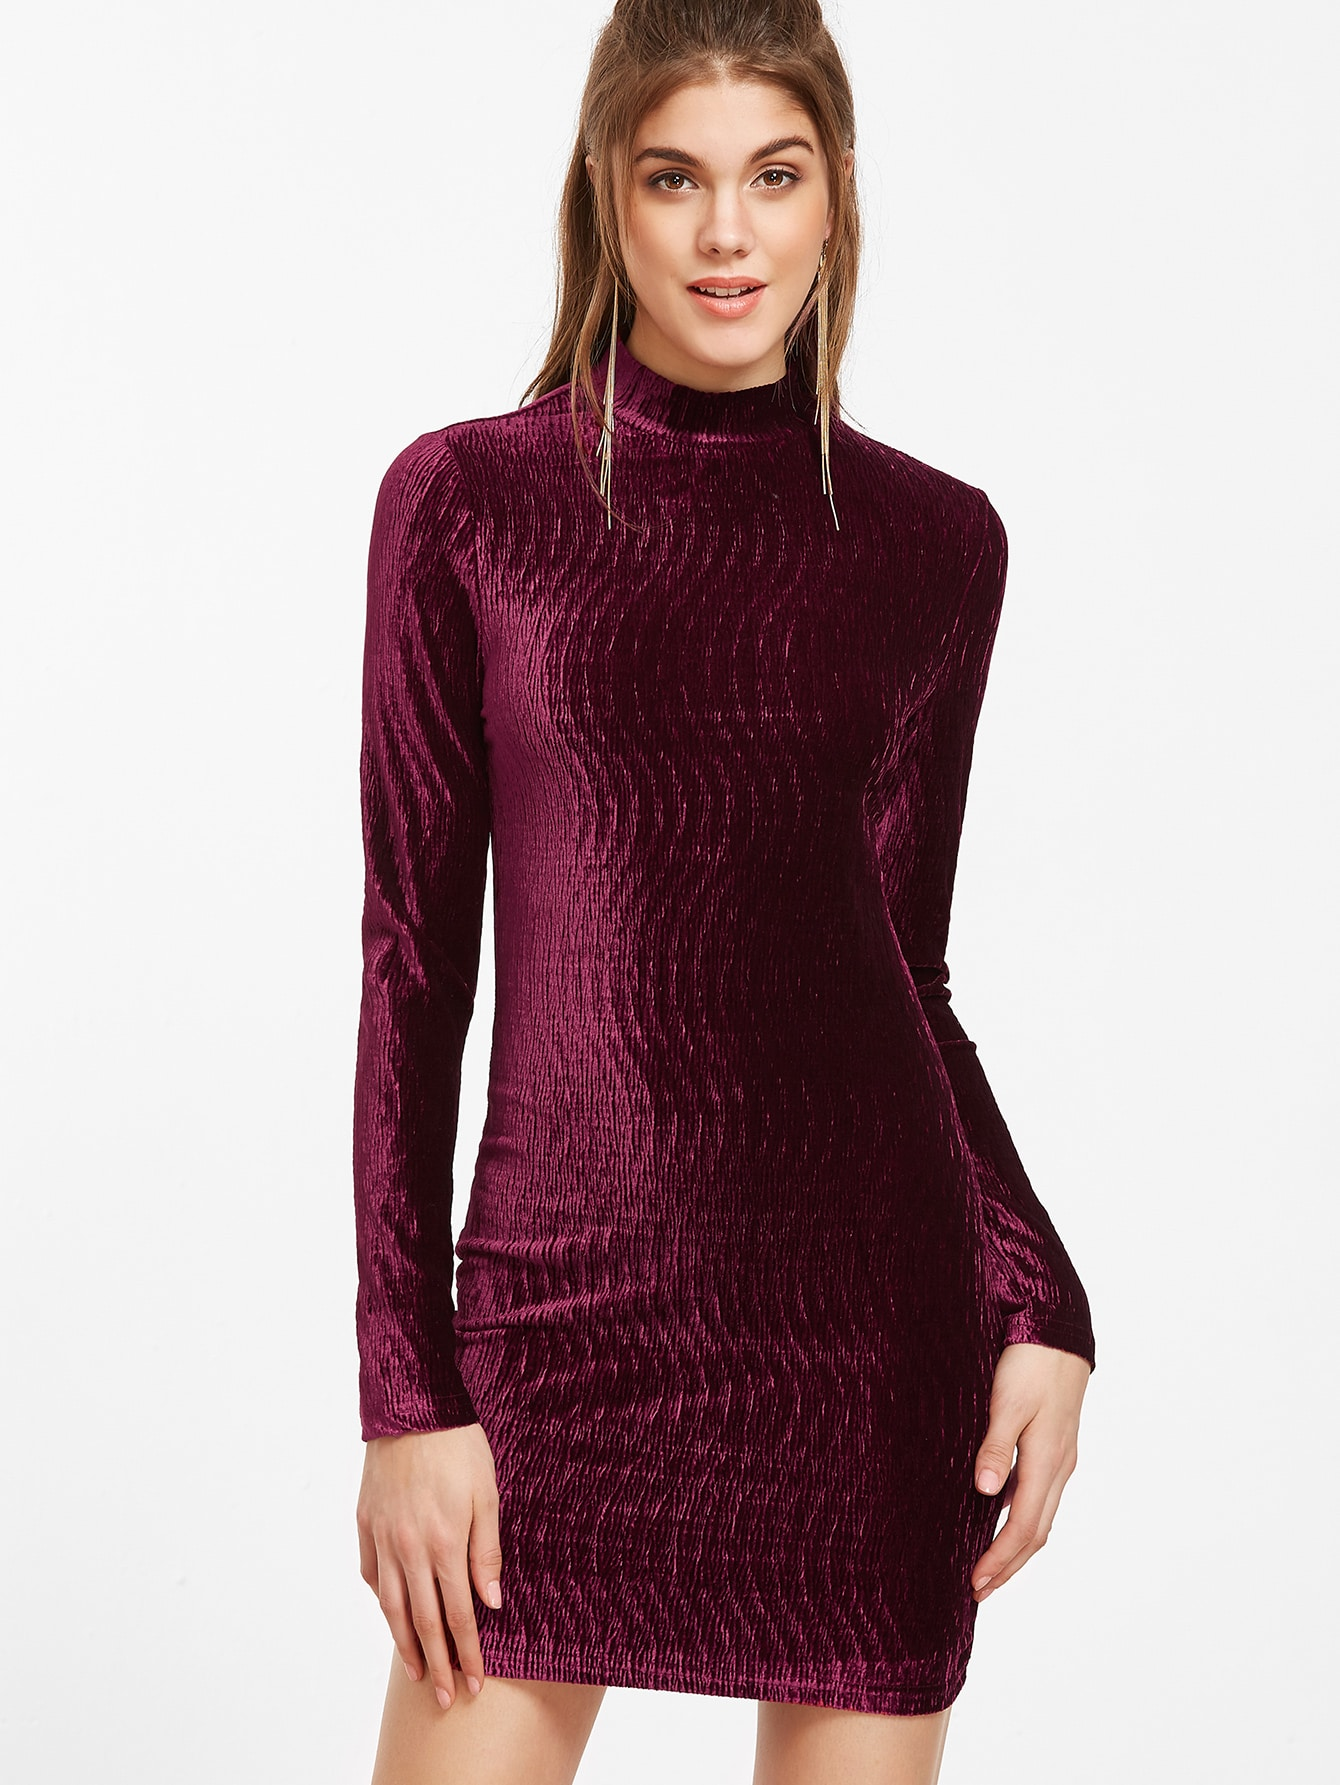 Burgundy Mock Neck Keyhole Back Textured Velvet DressBurgundy Mock Neck Keyhole Back Textured Velvet Dress<br><br>color: Burgundy<br>size: L,M,S,XS